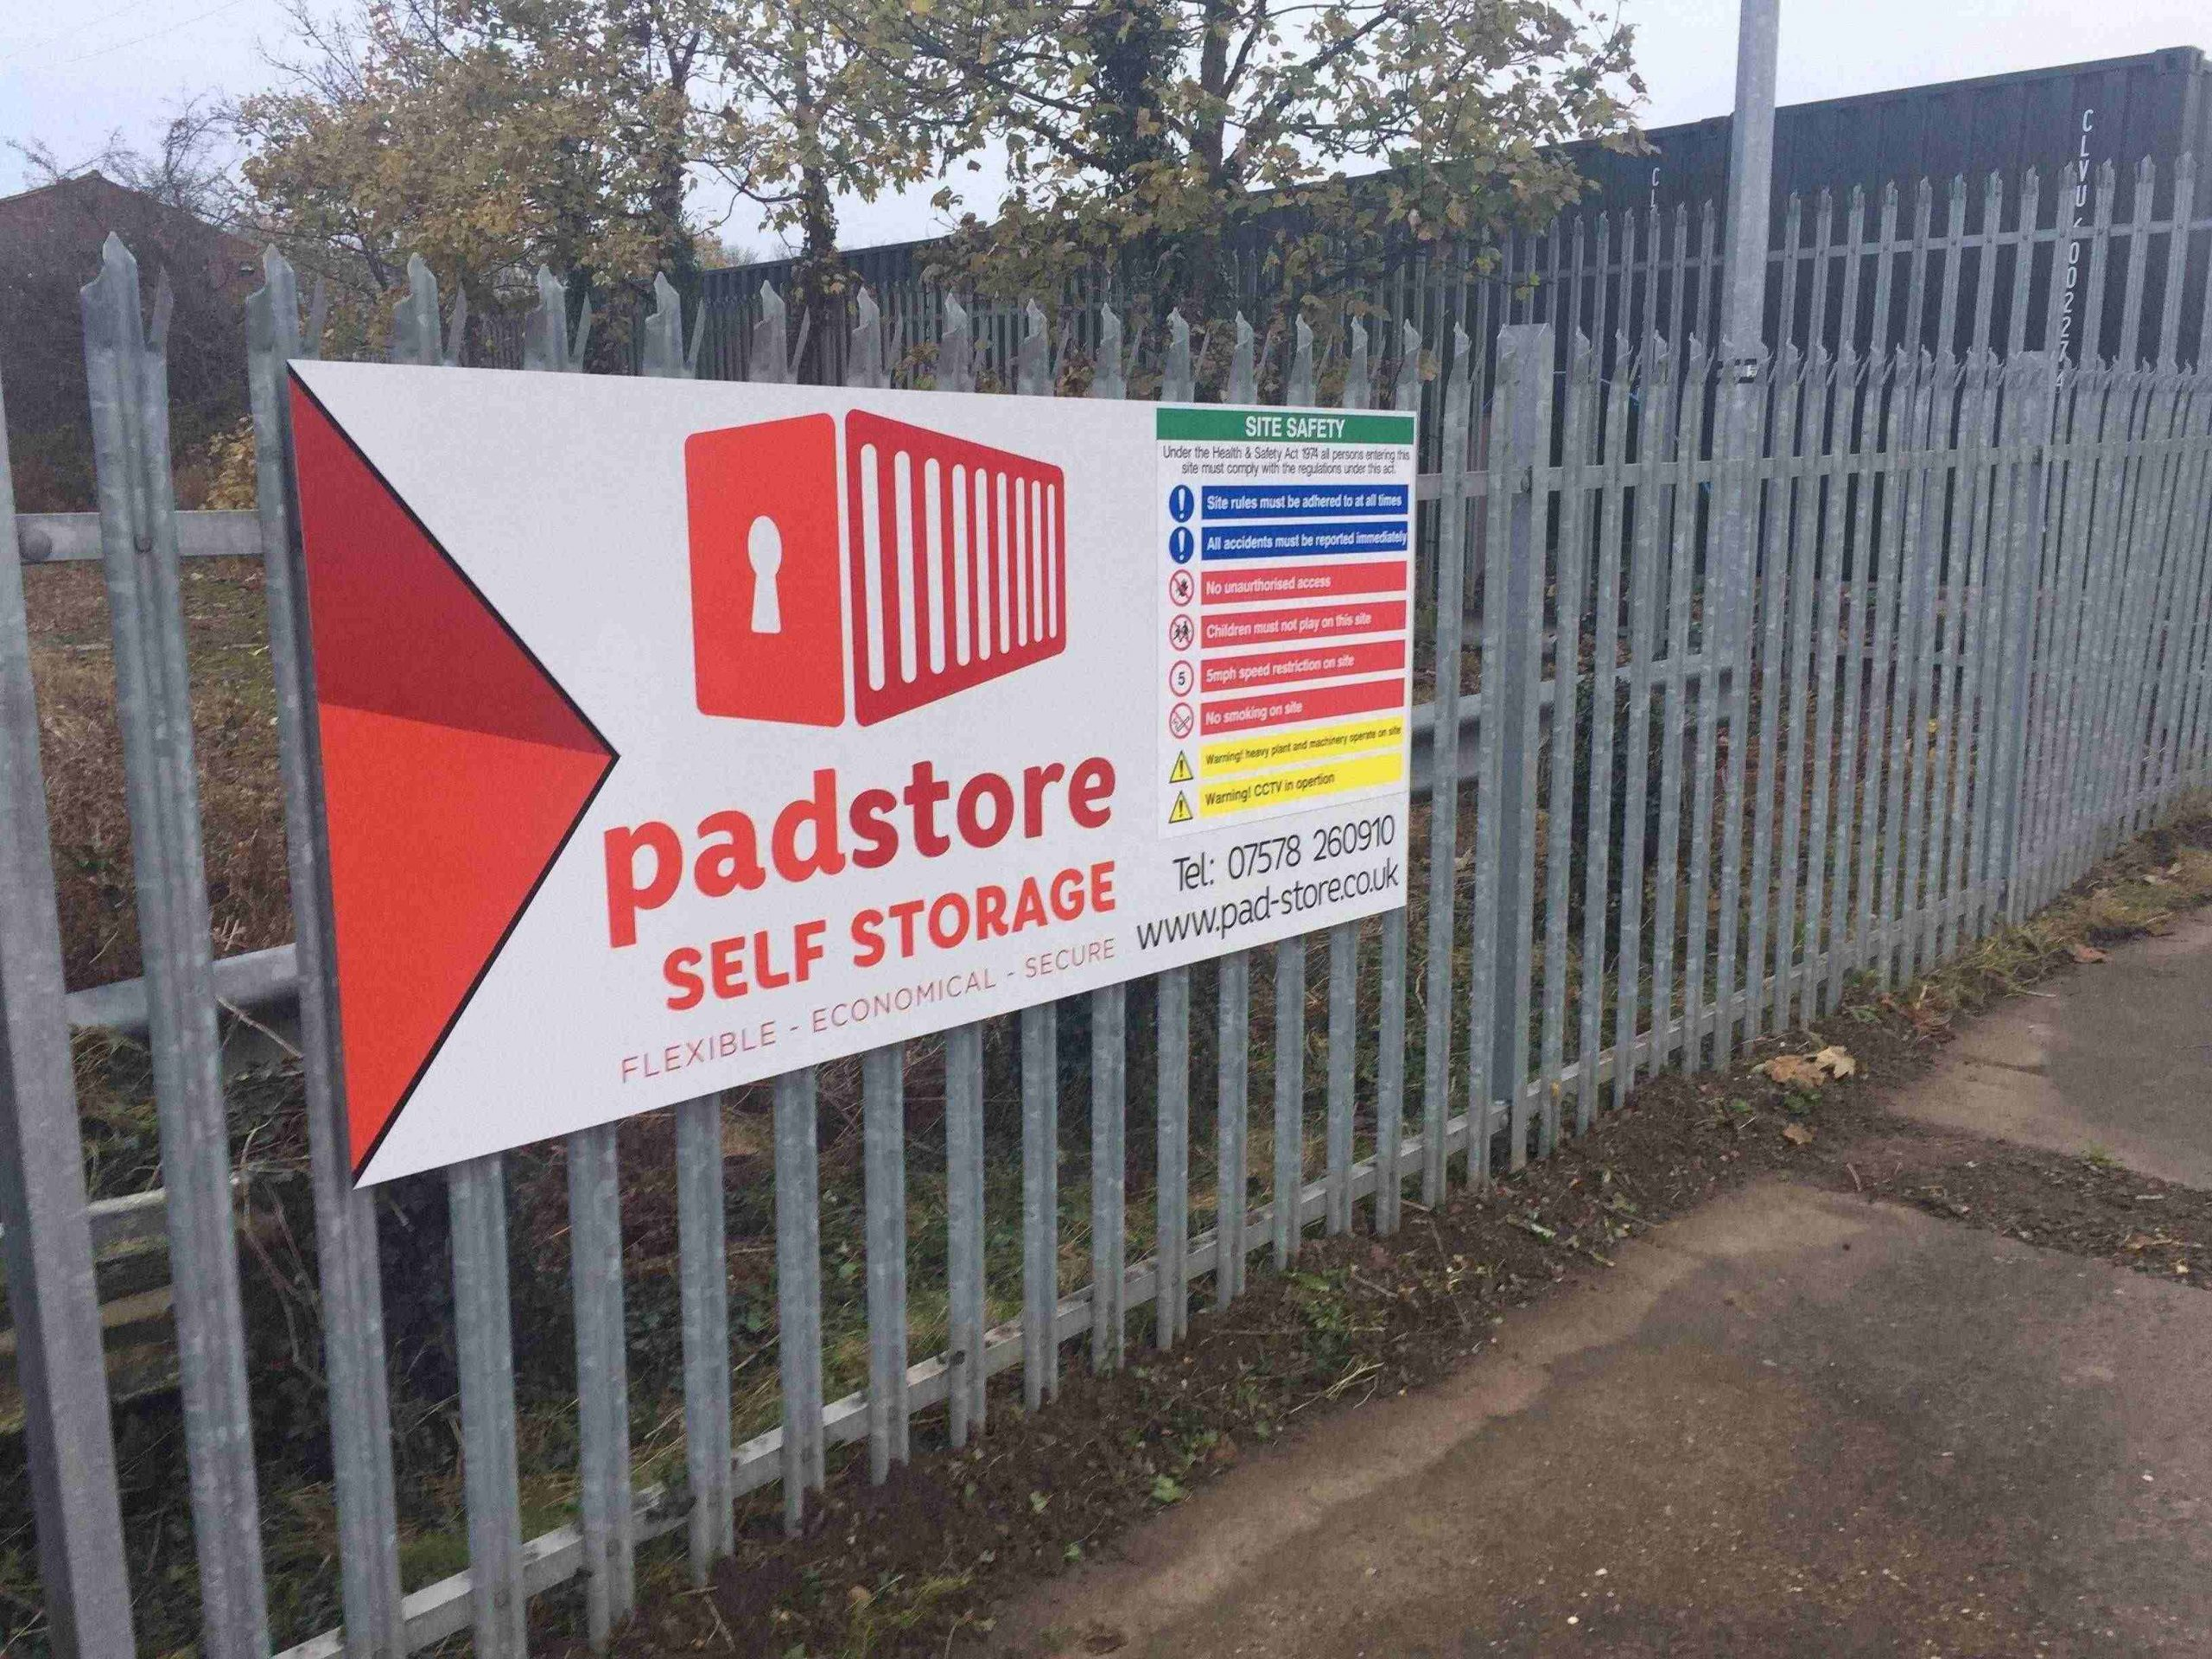 PadStore Self Storage - Grantham a storage company in The Haulage Yard, A1/a52 Sip Road, Nr Barrowby, Grantham, UK